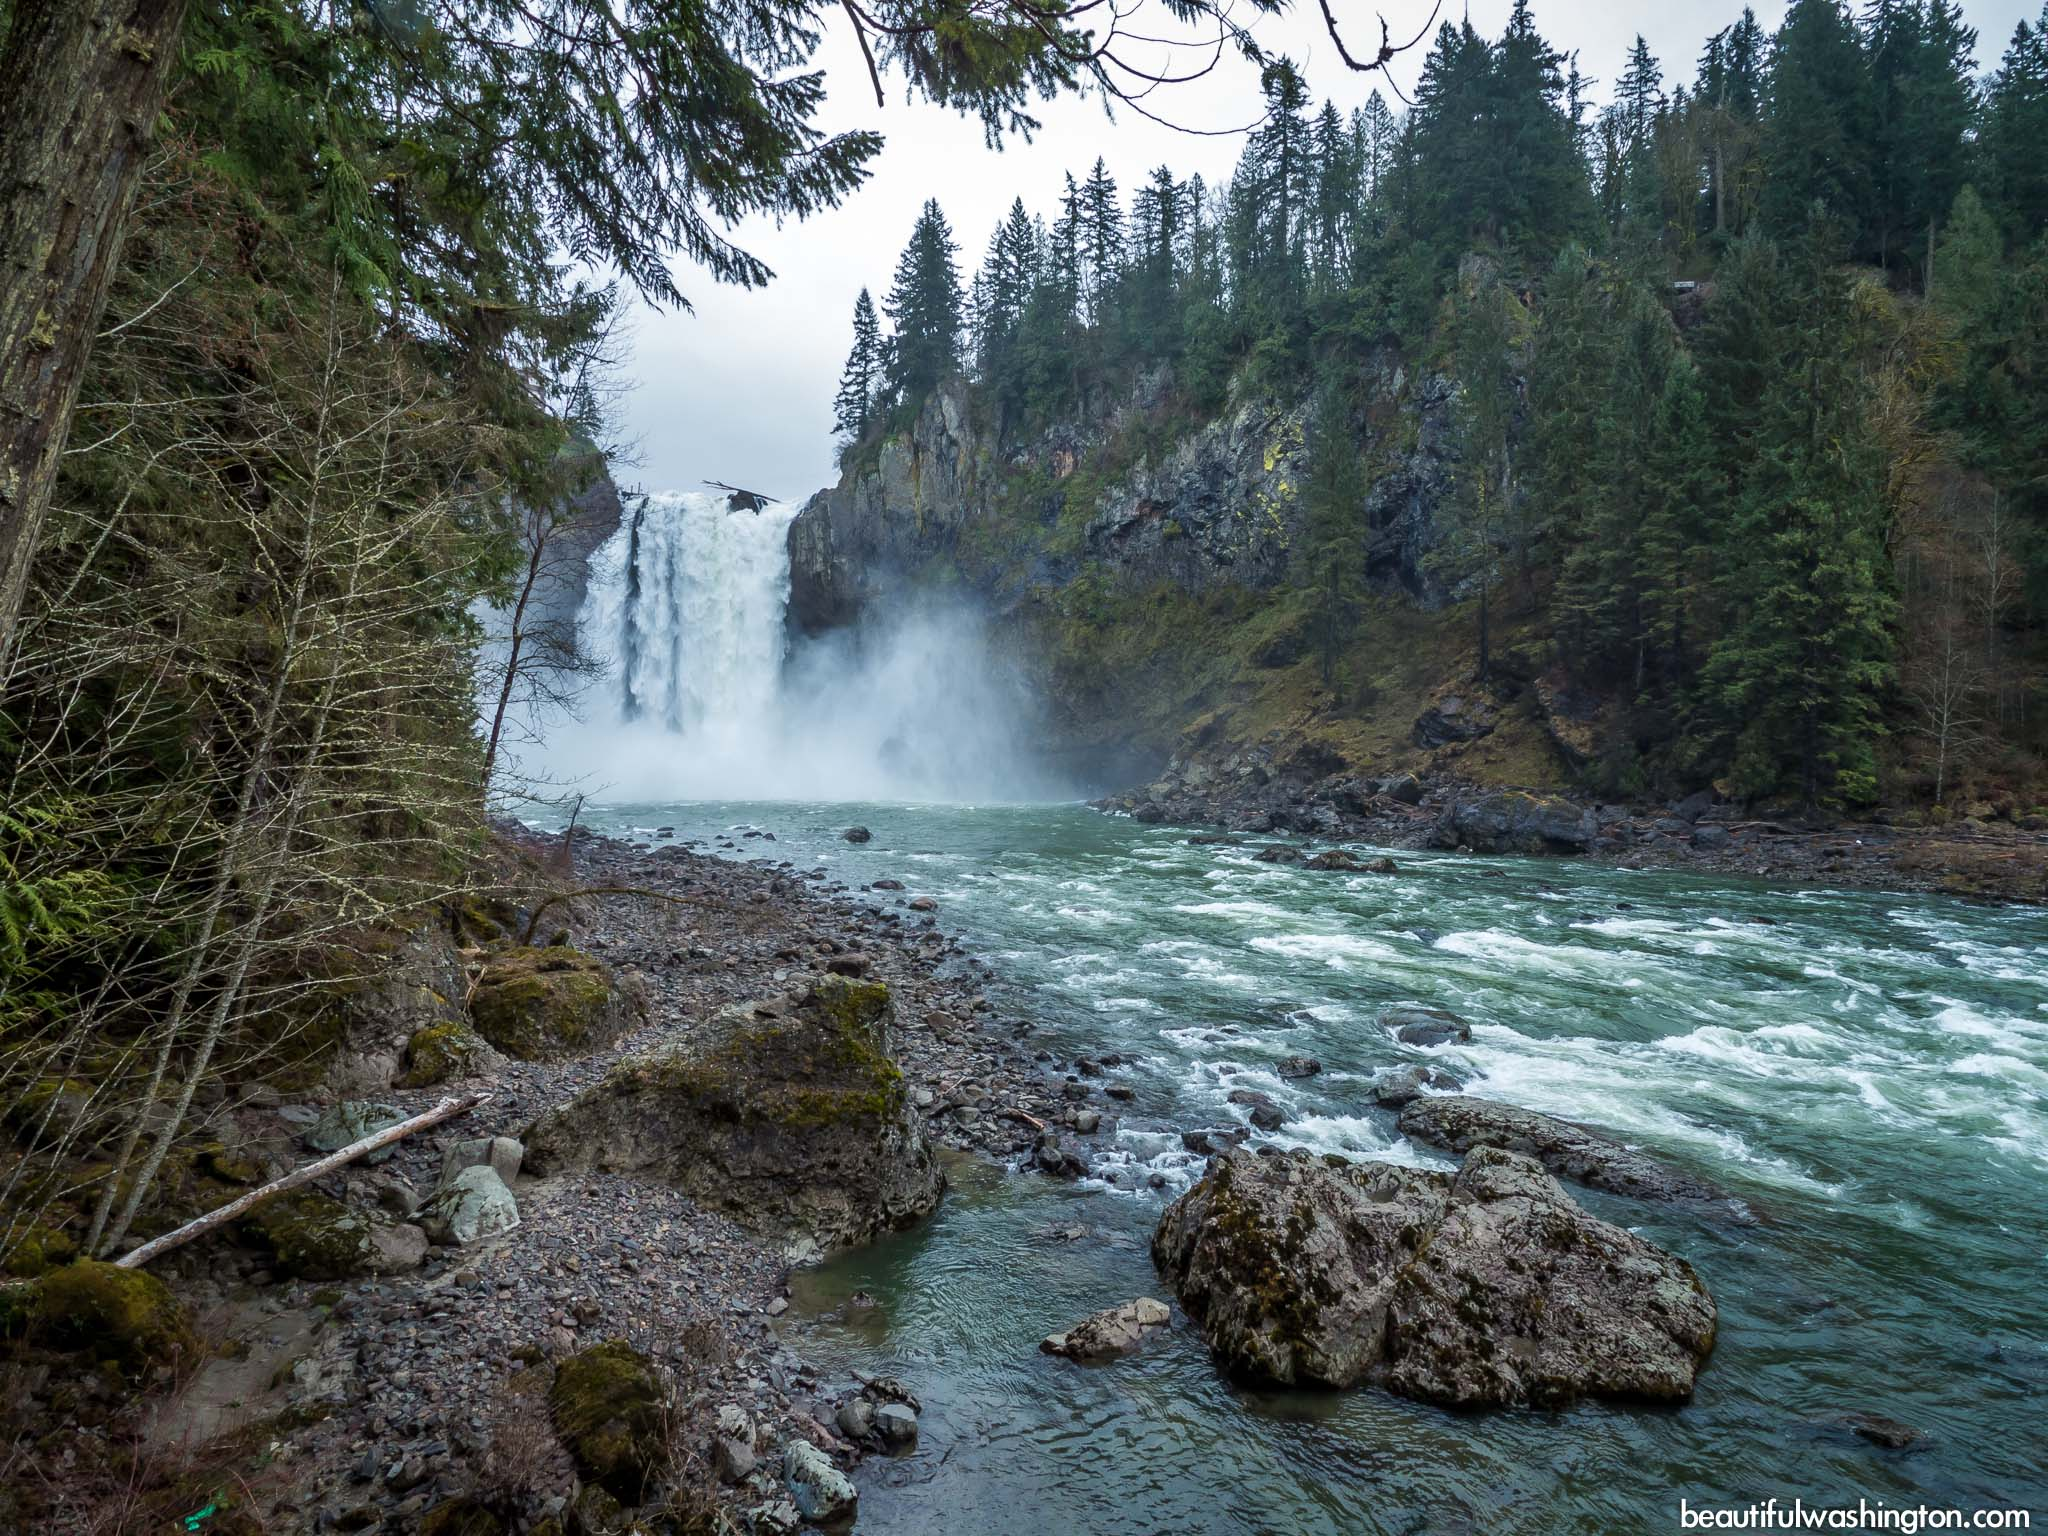 Photo from Snoqualmie Region, Snoqualmie Falls